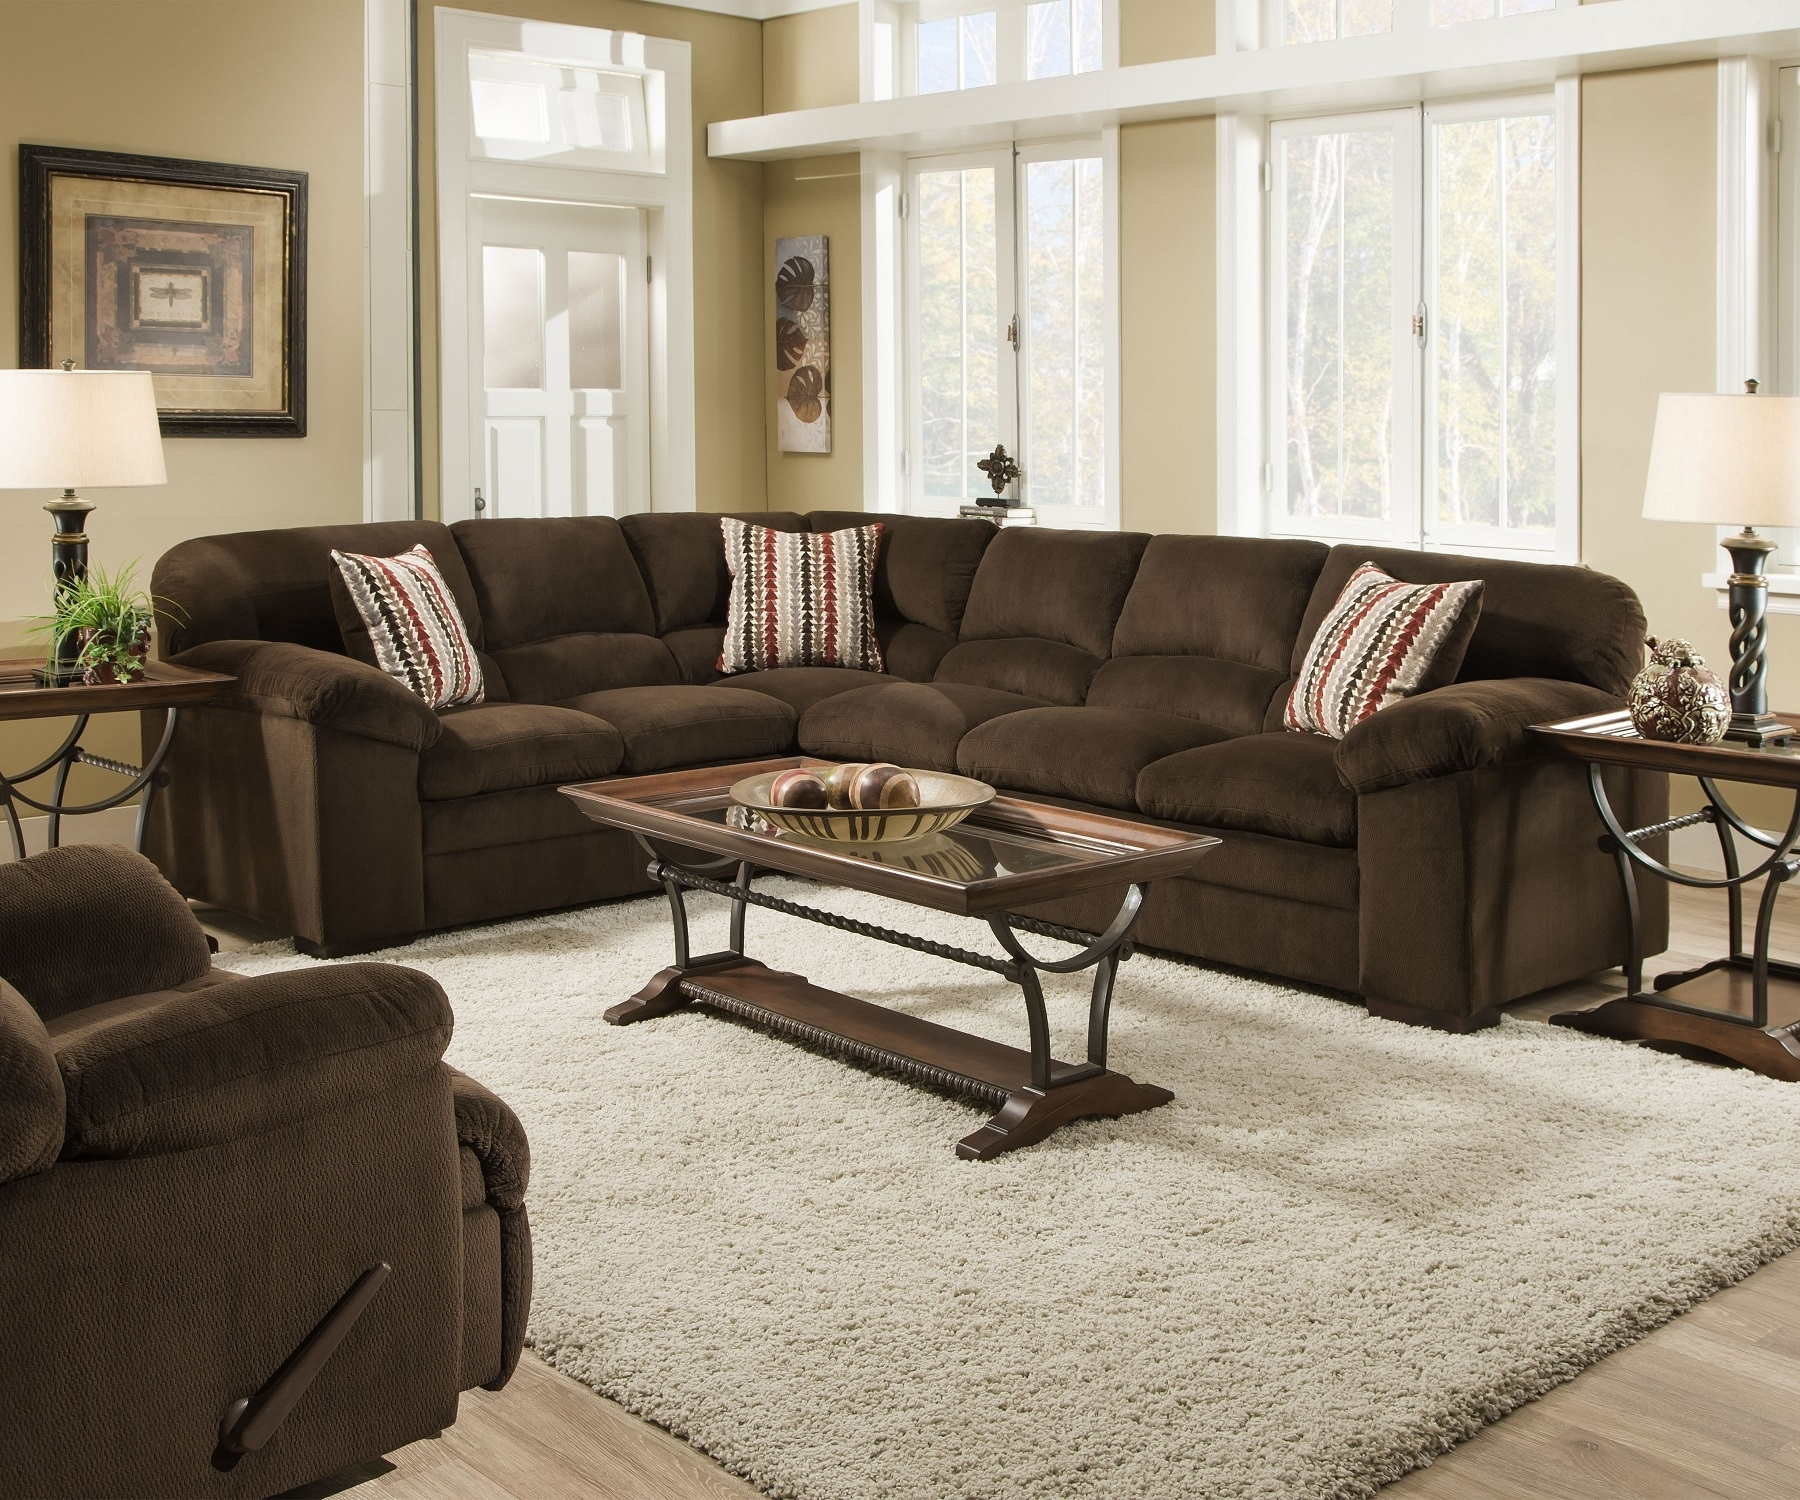 Simmons Dover 8043 Chocolate Ultra Plush Soft Seating Made In The Usa inside Chocolate Sectional Sofas (Image 13 of 15)